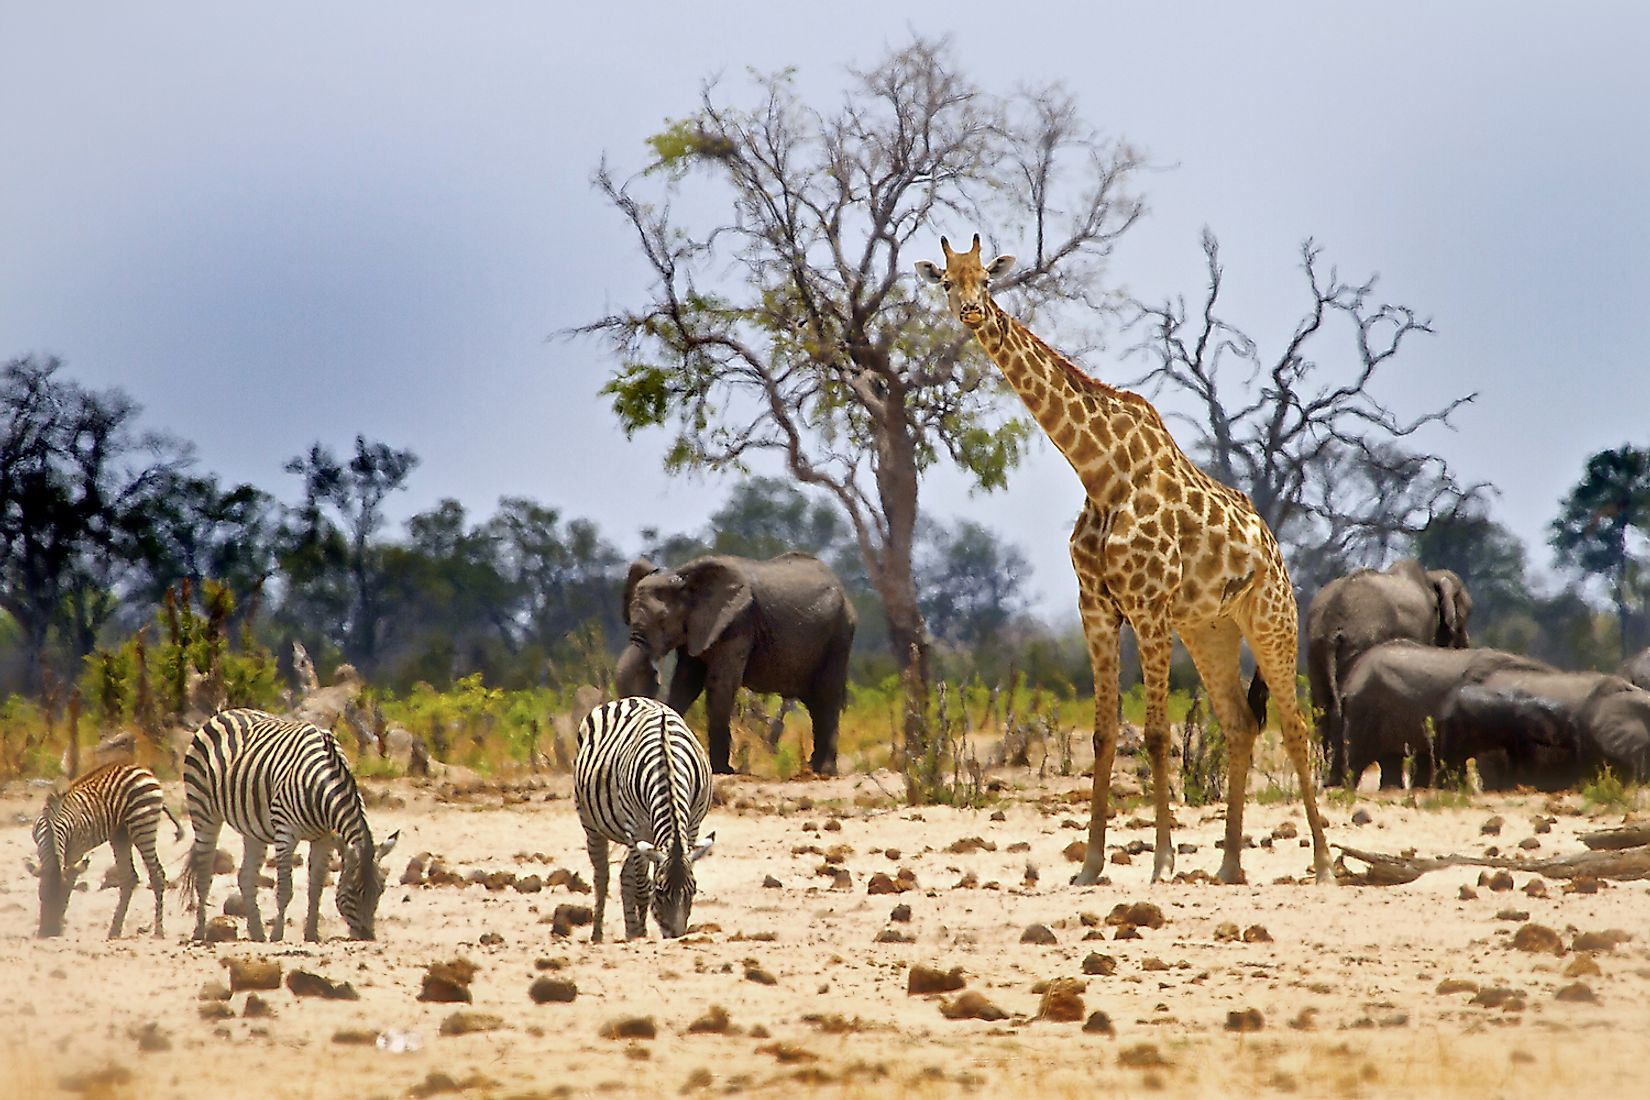 Zebra, Giraffe and elephant at a waterhole in Hwange National Park - Zimbabwe. Image credit: Paula French/Shutterstock.com